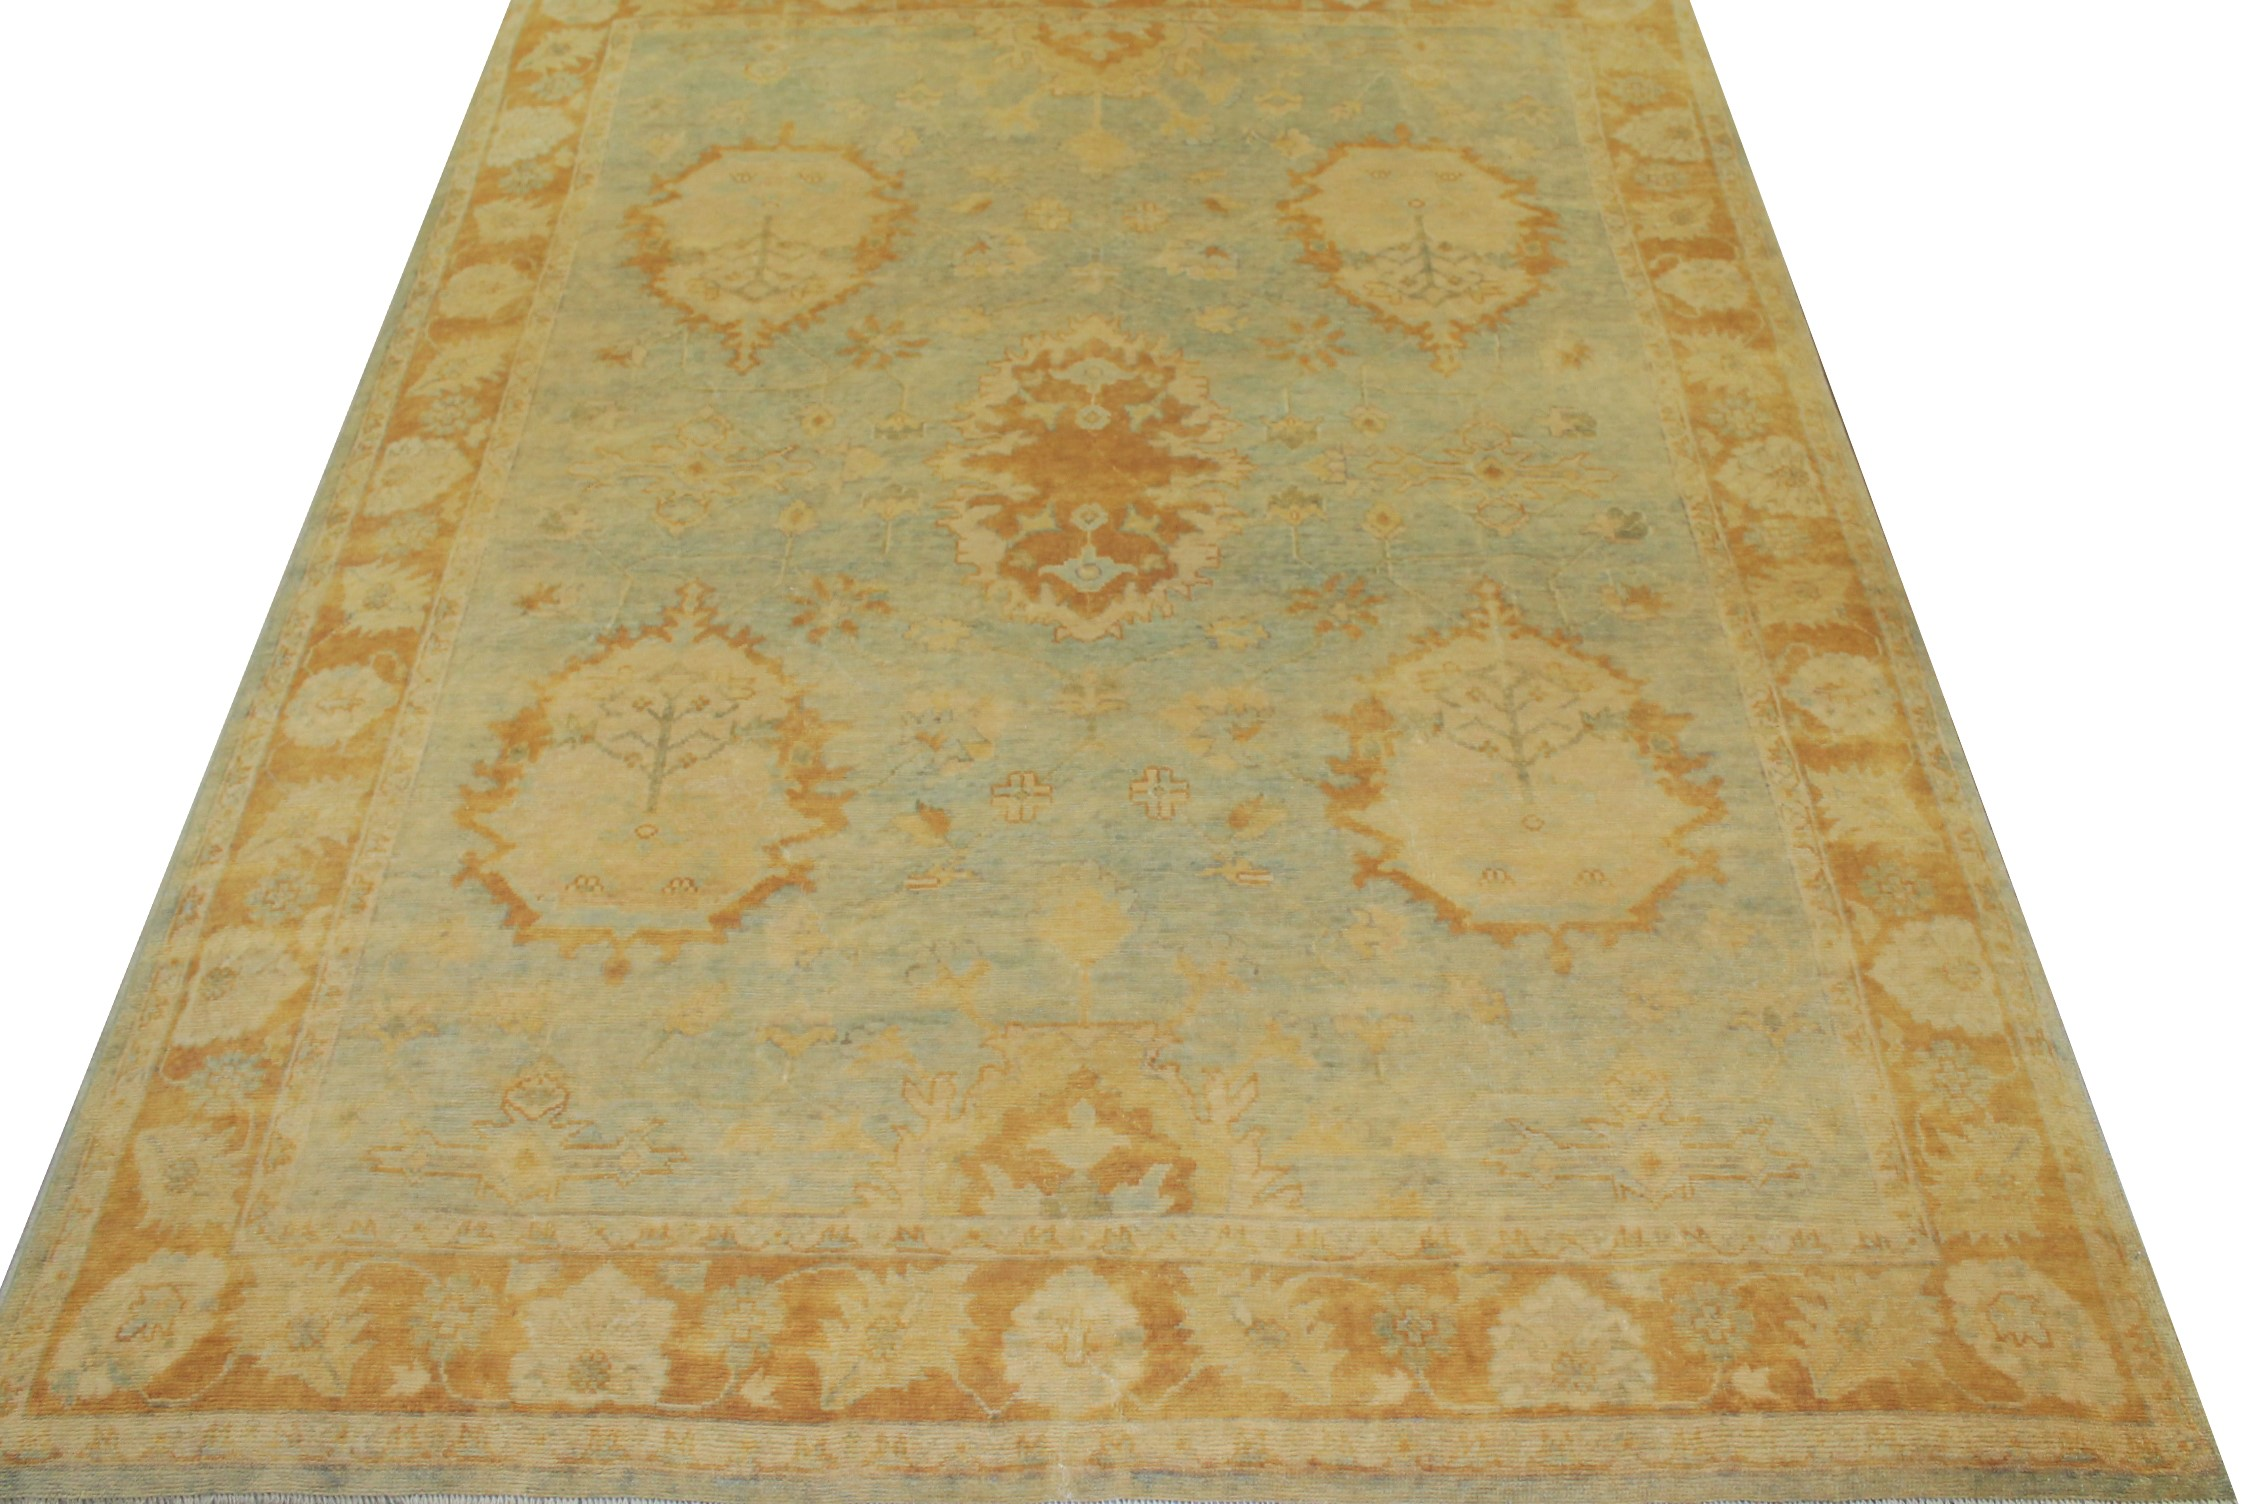 8x10 Oushak Hand Knotted Wool Area Rug - MR14860